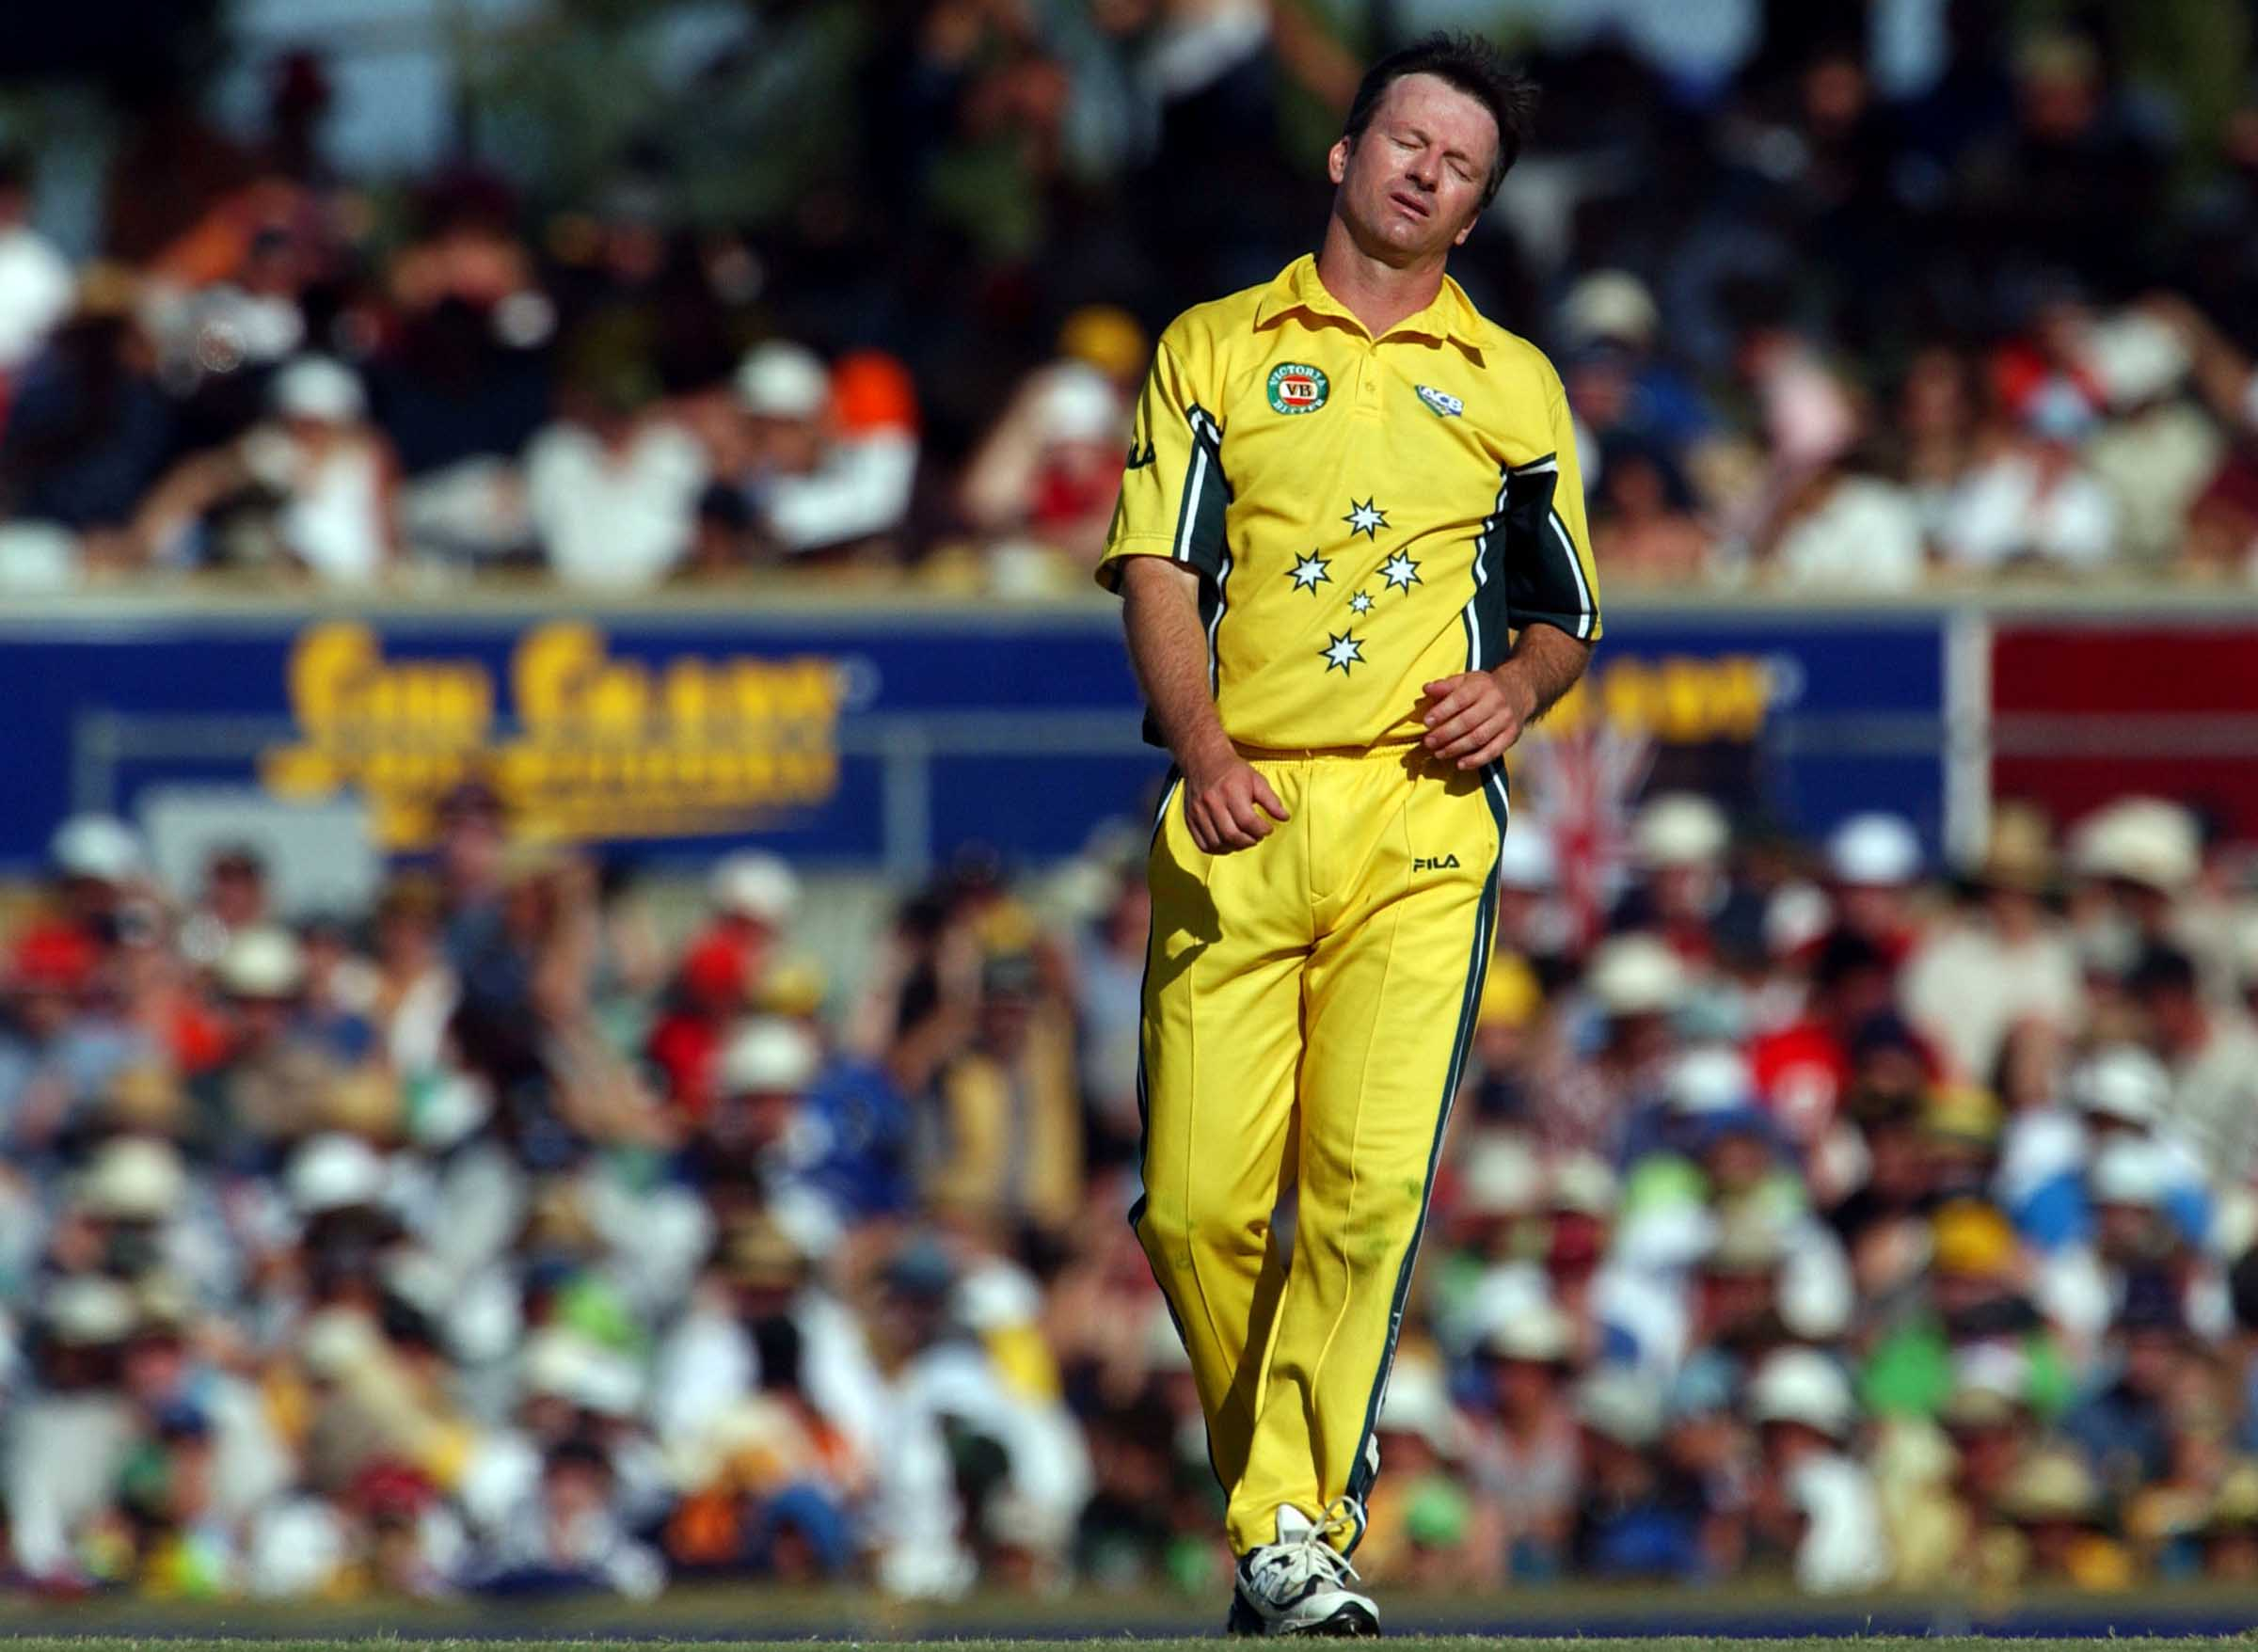 A frustrated Waugh during his final ODI // Getty